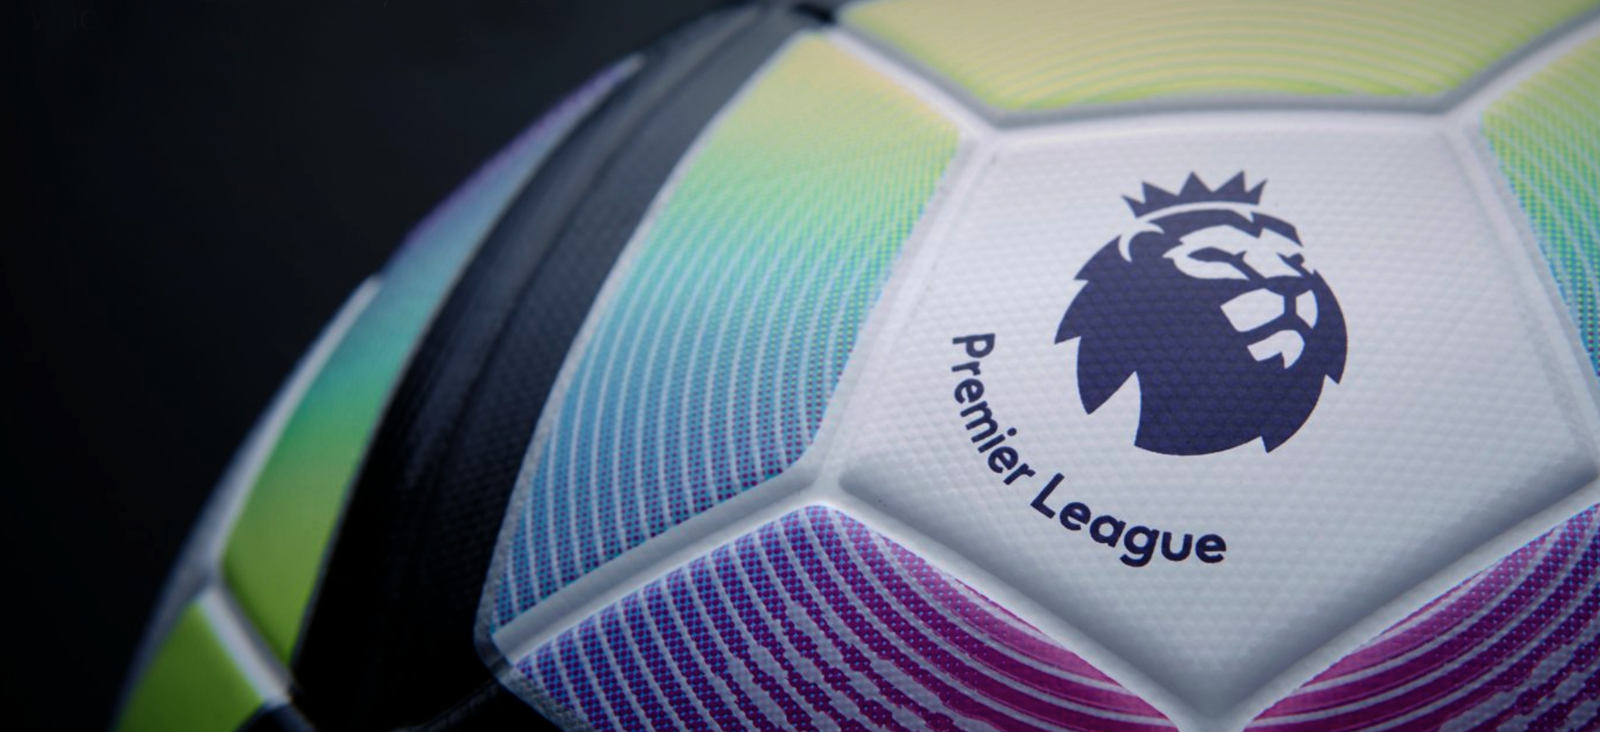 Ranking all the club logos in the Premier League